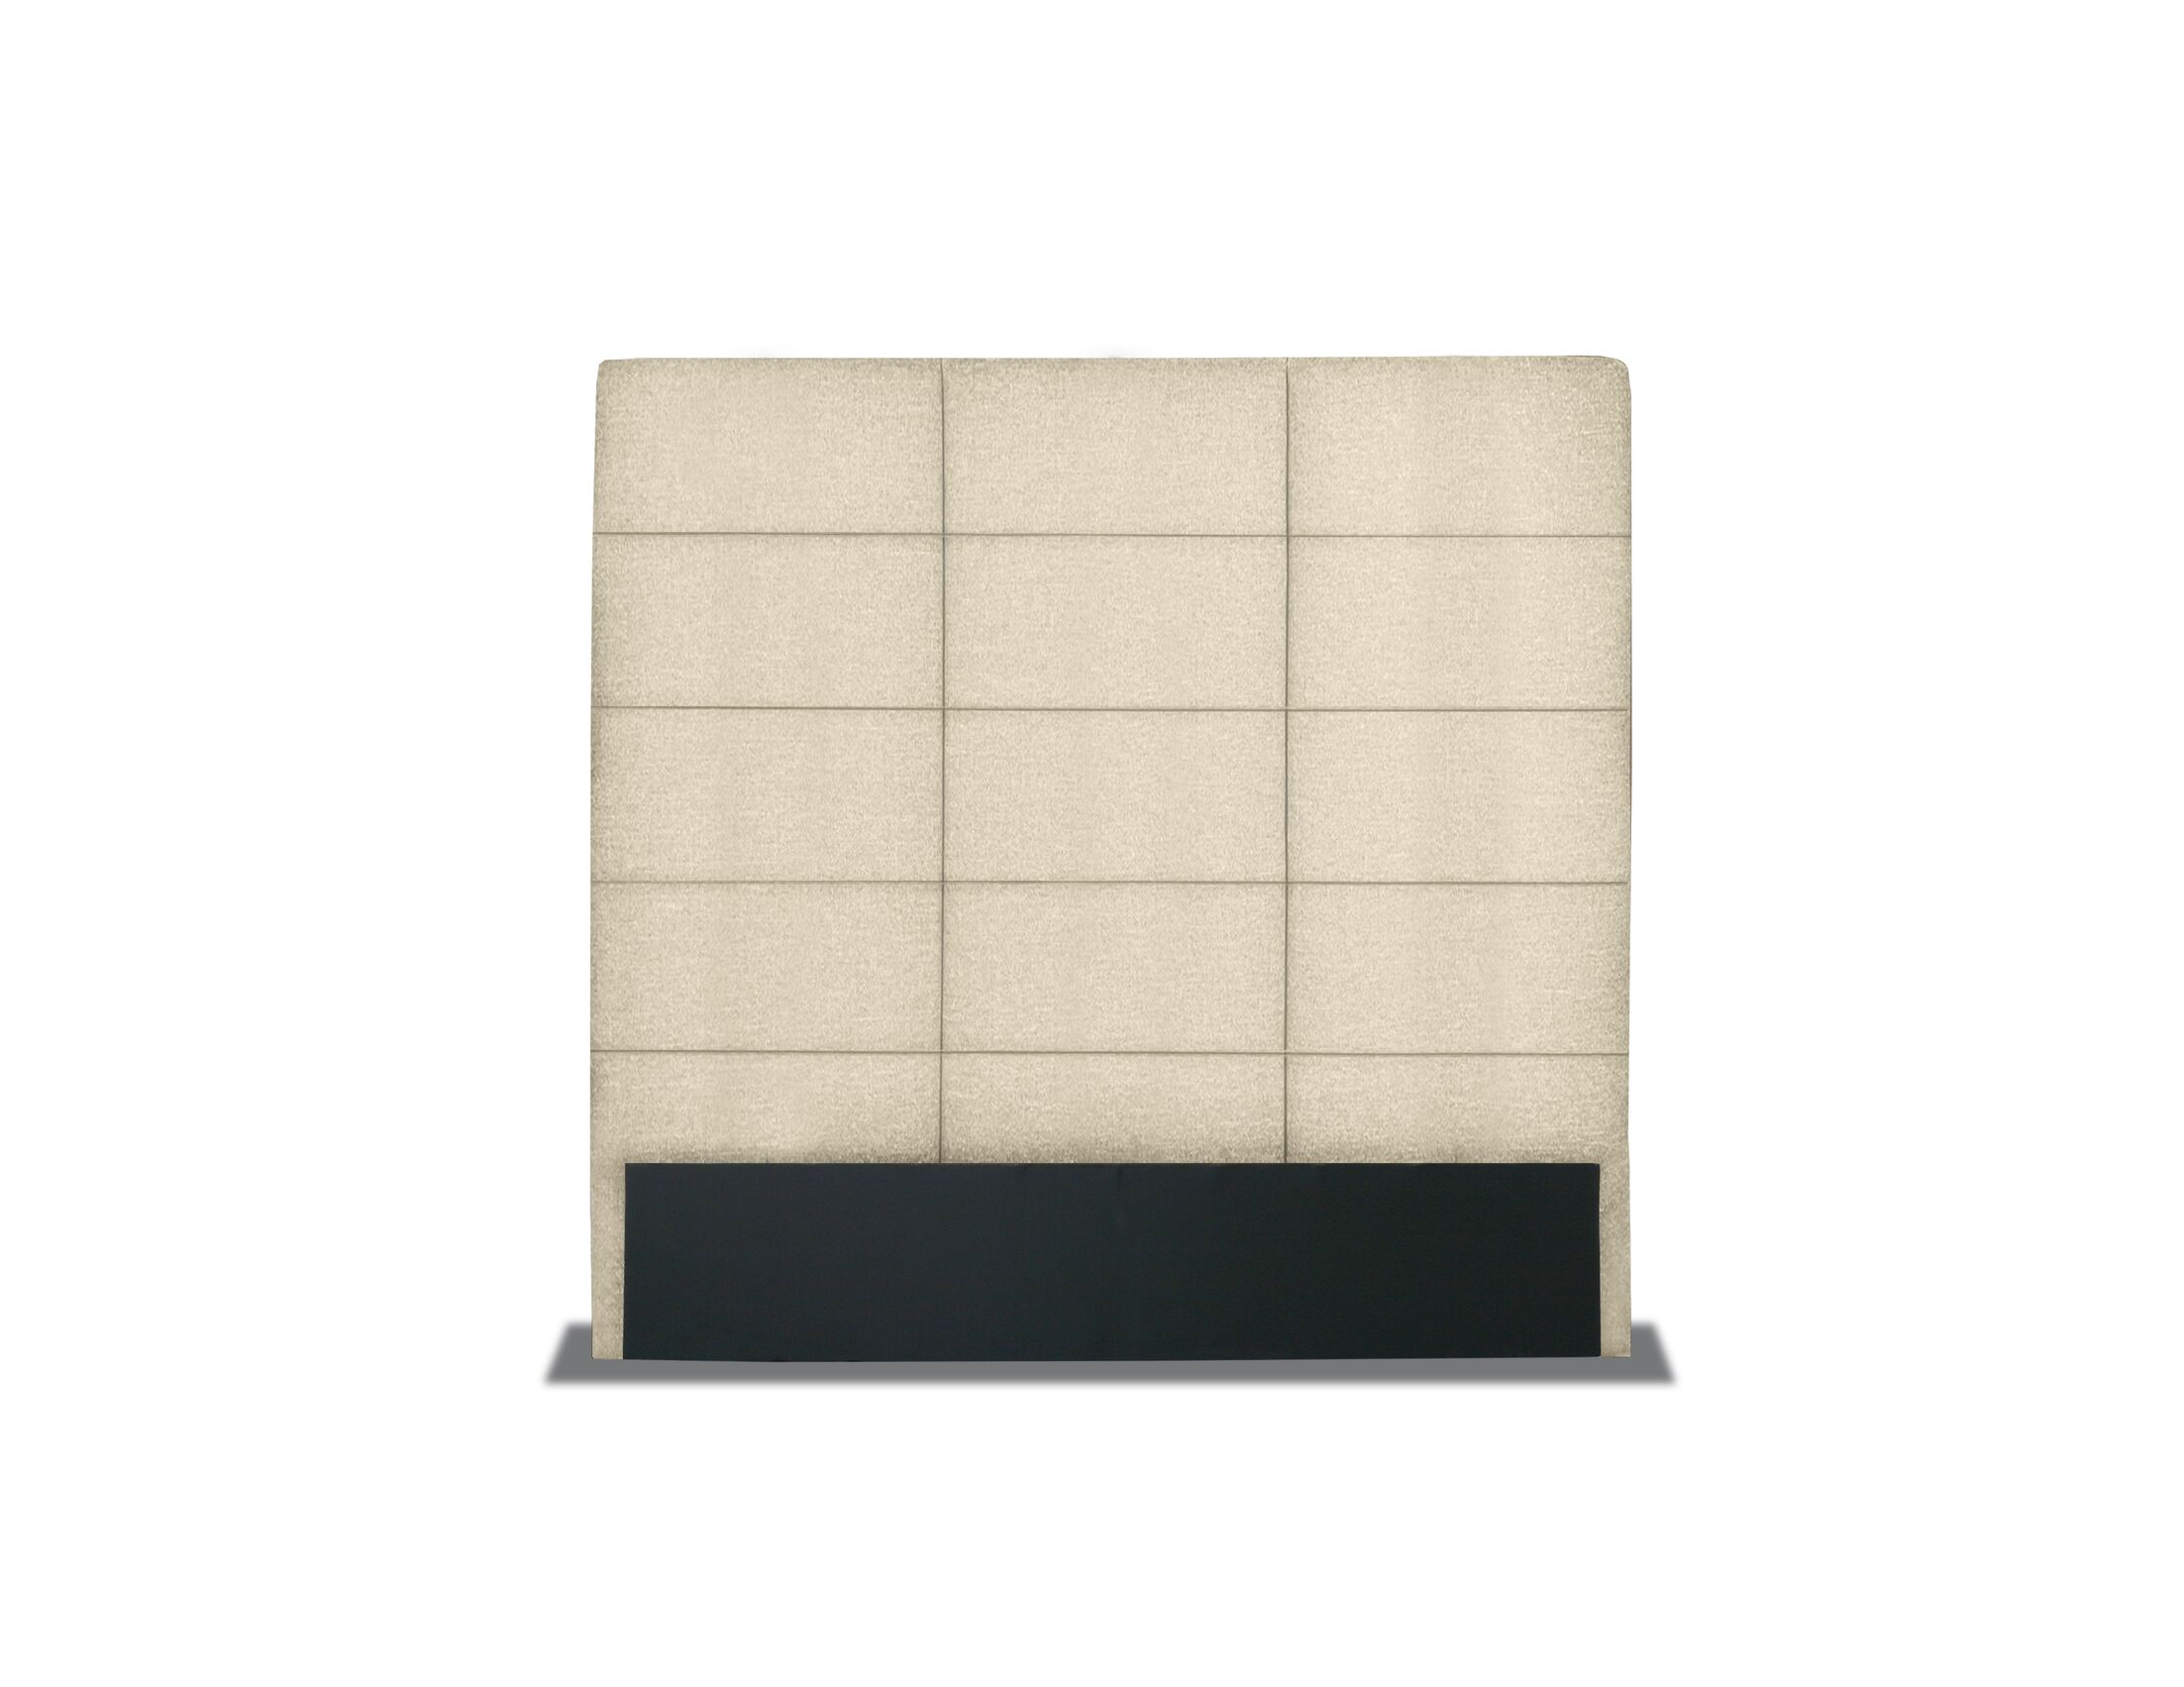 Handley Tufted Upholstered Panel Headboard Size: Mid Height Queen, Color: Sand